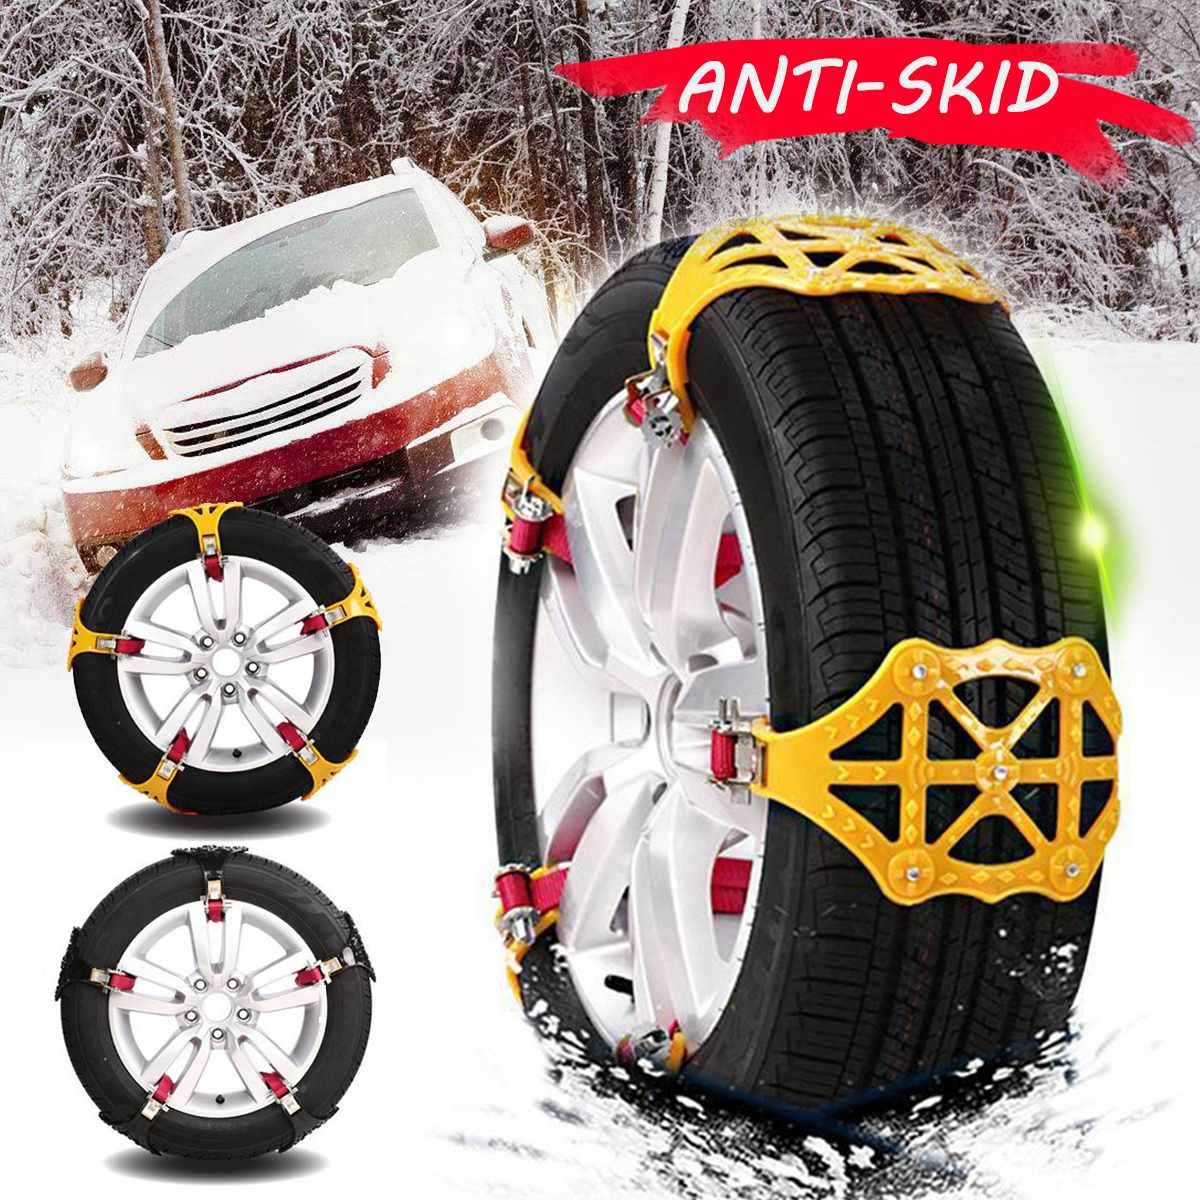 Winter Universal Car Tire Anti Skip Snow Chain Cars Trucks Wheels Tyres Roadway Safety Tire Chains Sand Mud Road Anti-slip Belt